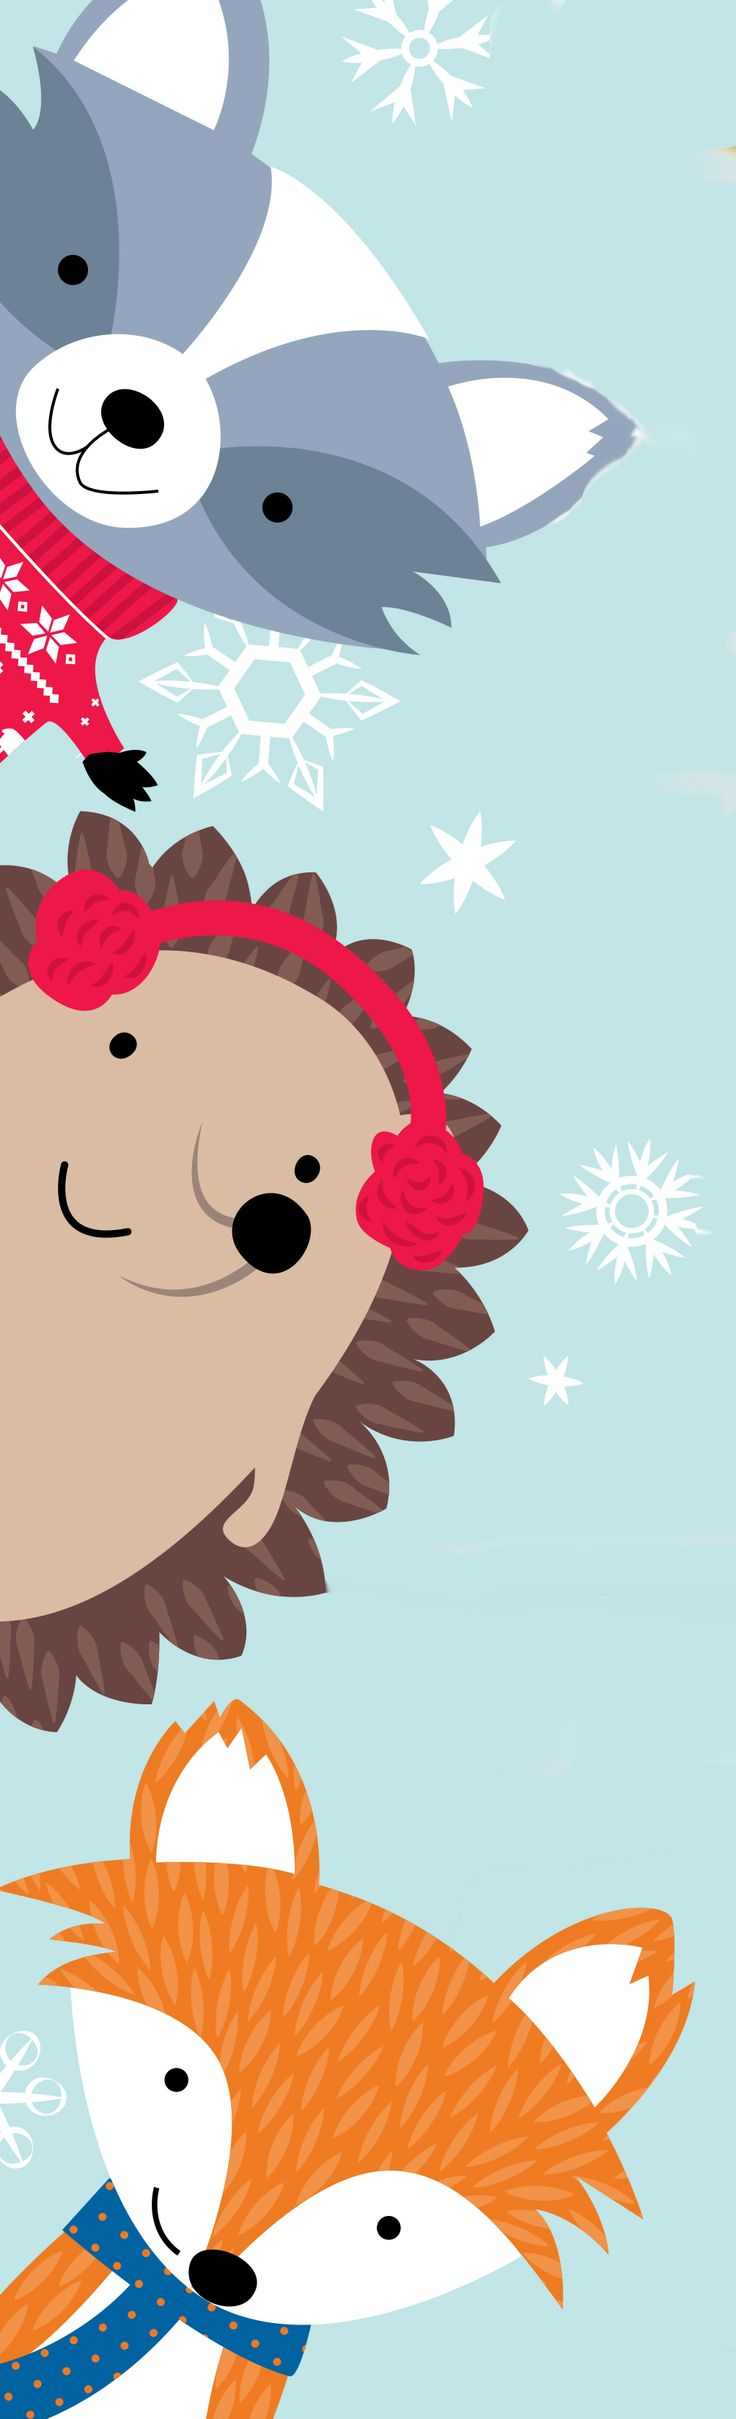 Check out our Winter Woodland Friends! Meet the squirrel, fox, raccoon, owl and hedgehog.